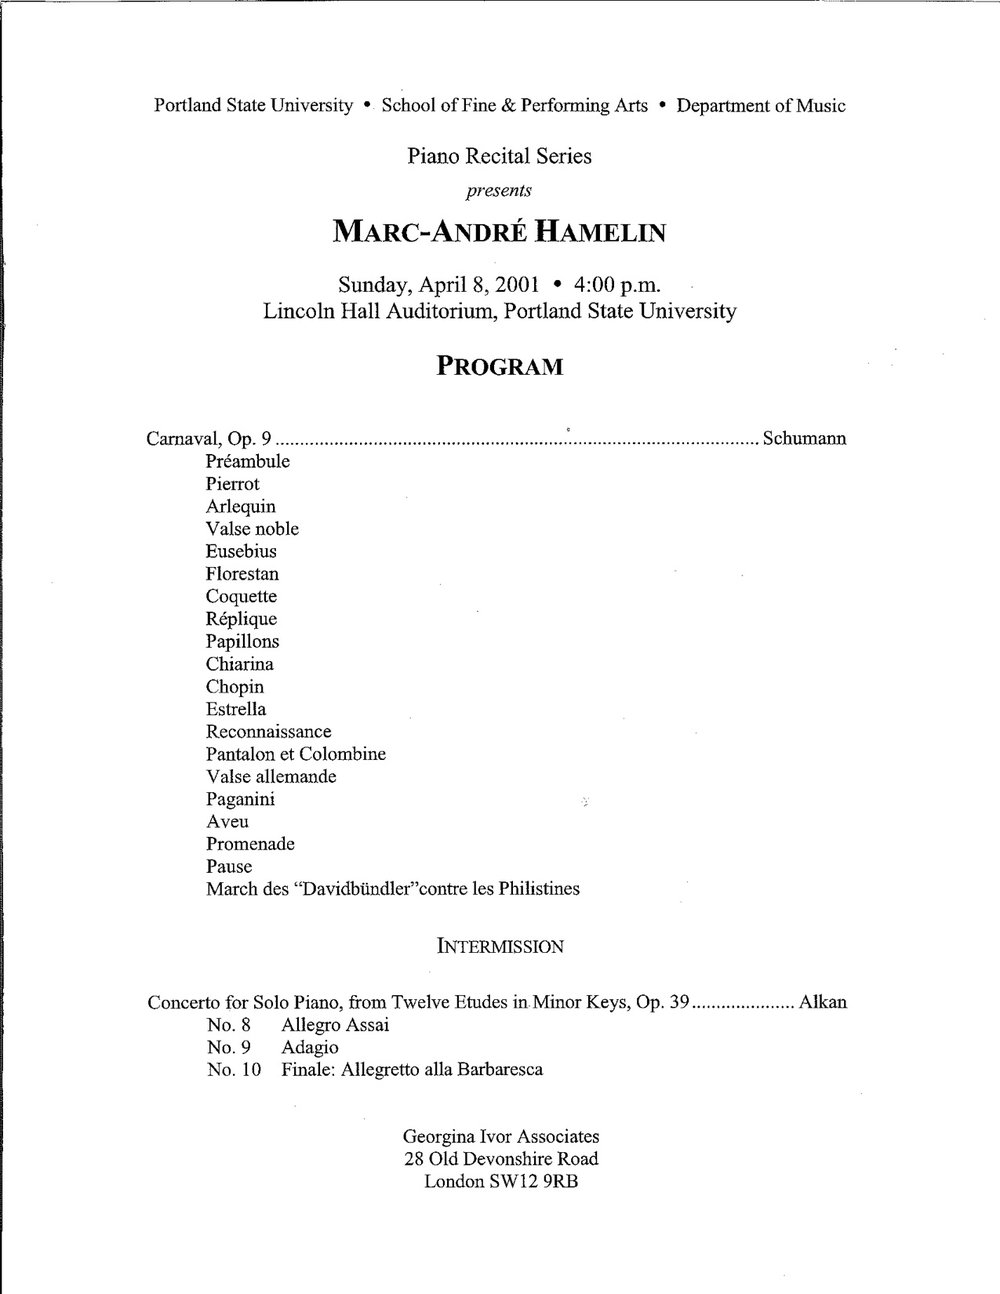 Hamelin00-01_Program3.jpg